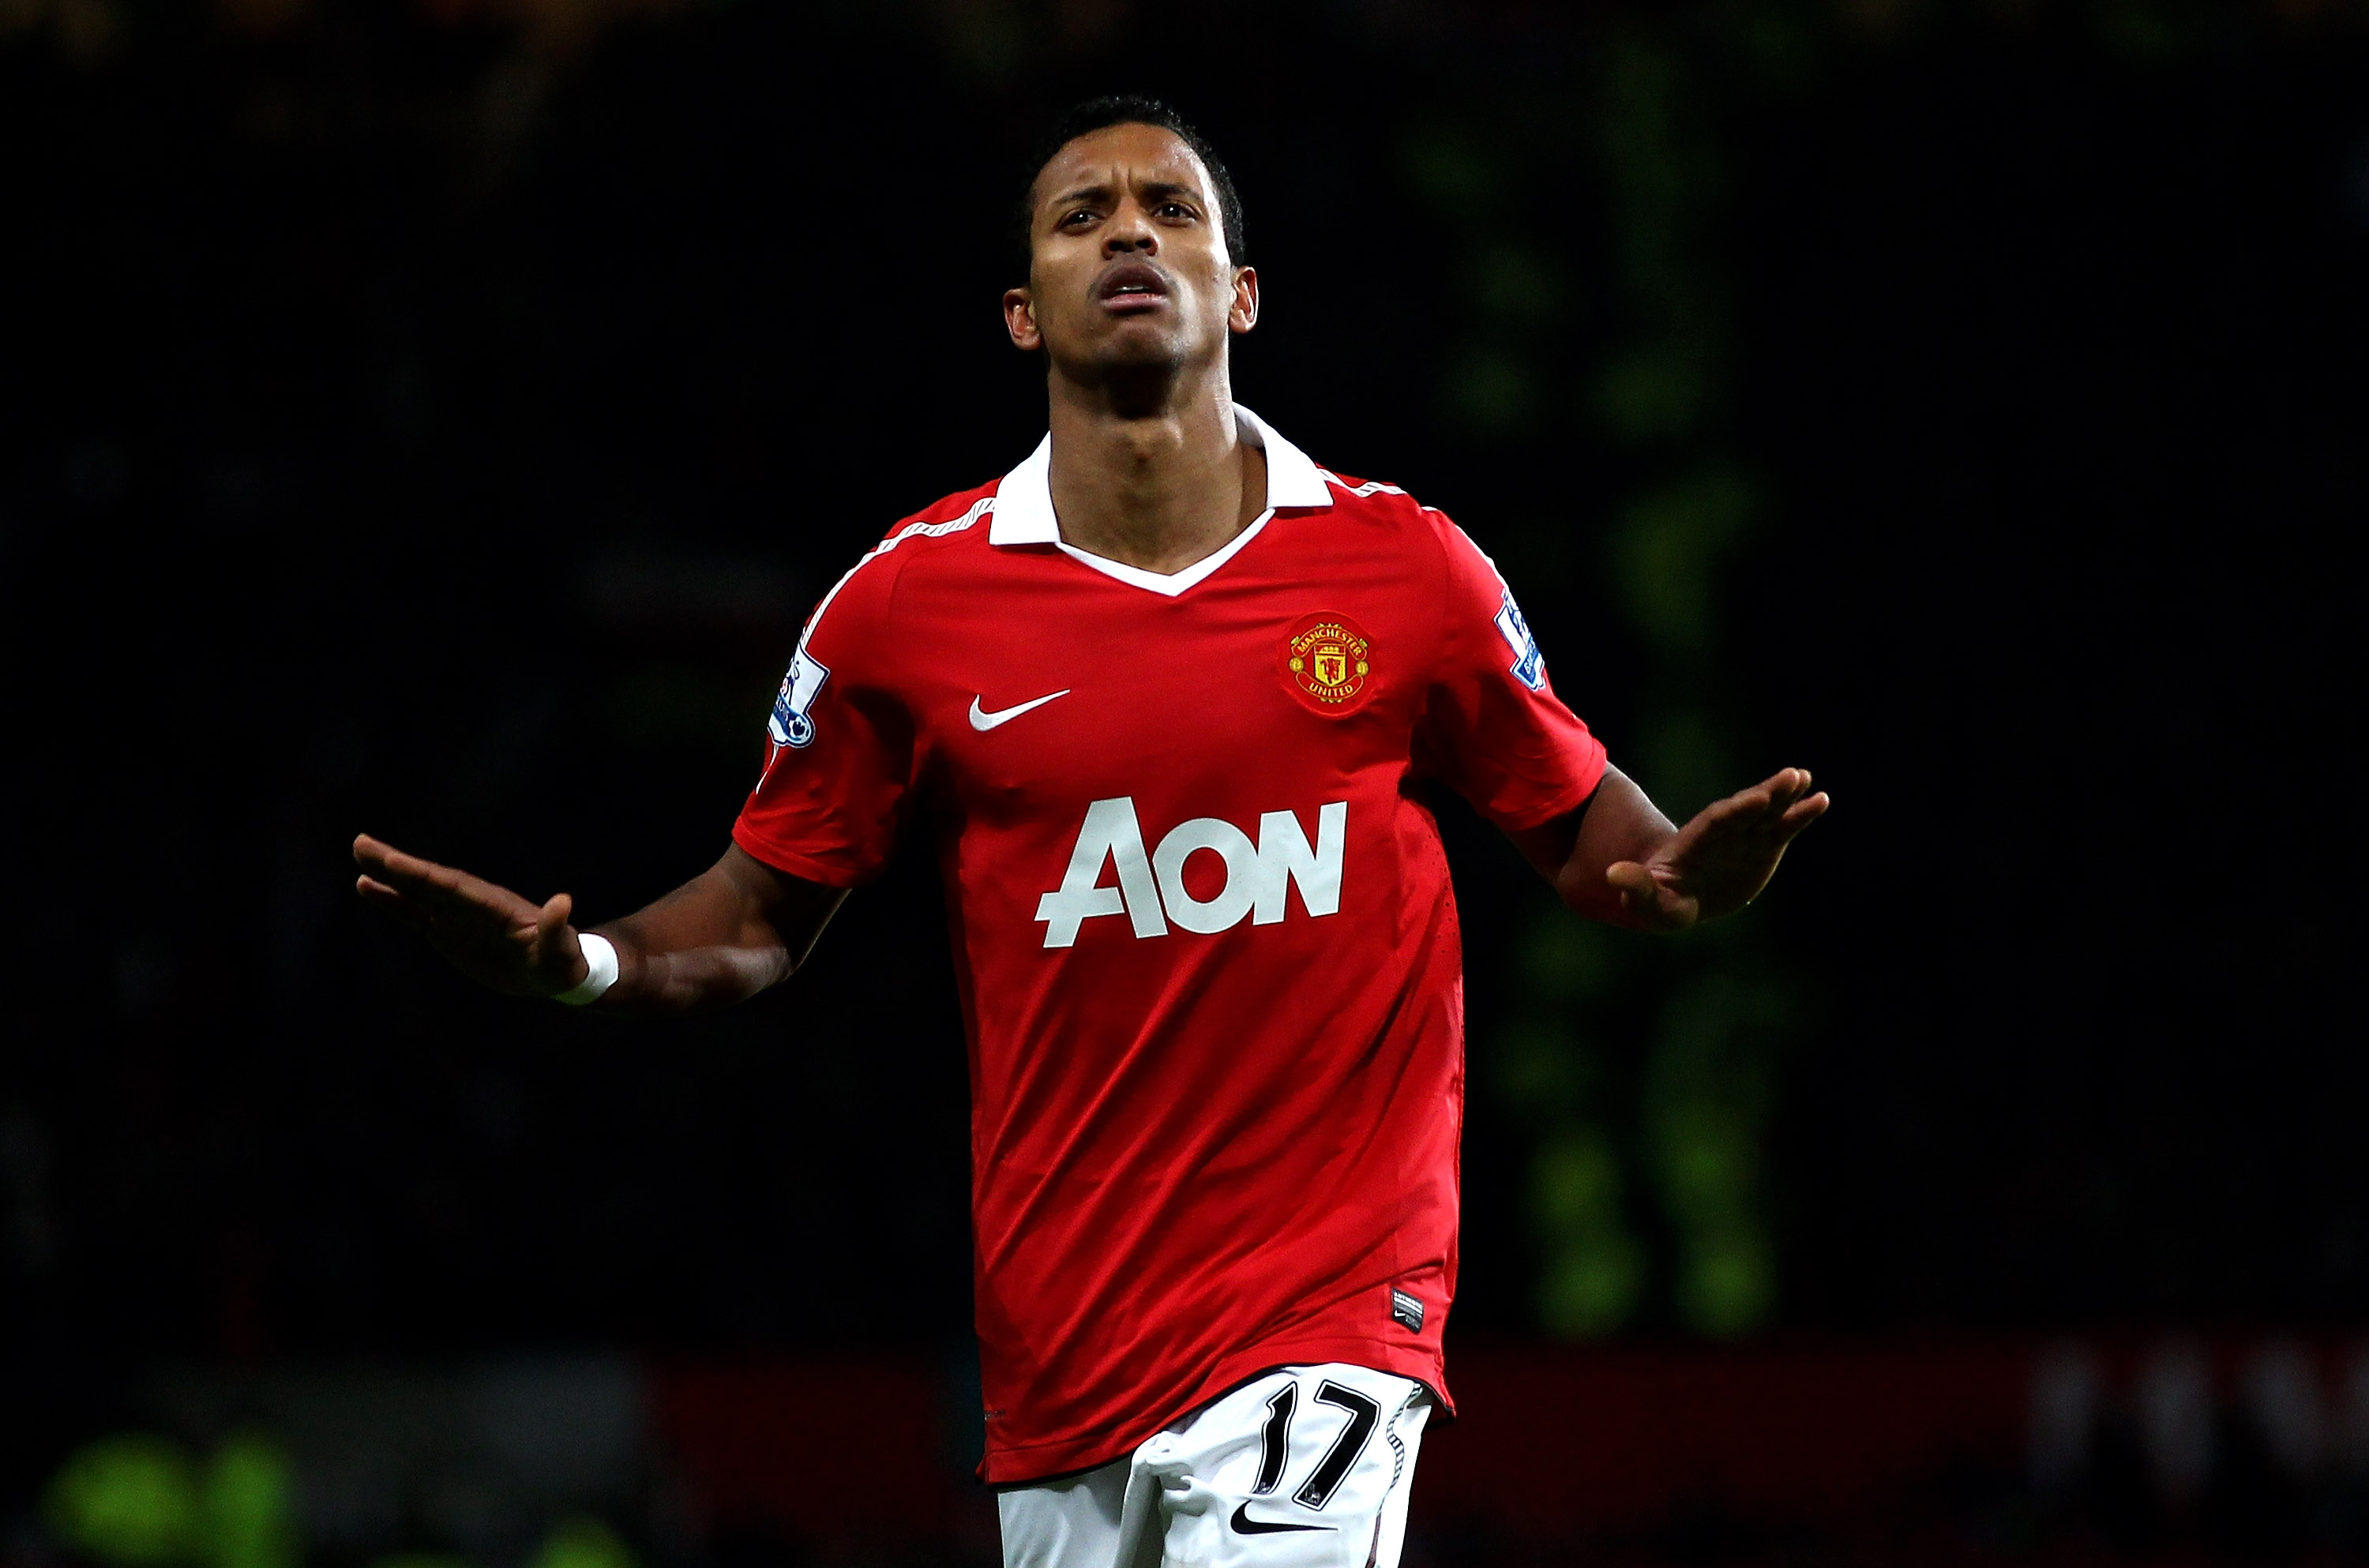 MANCHESTER, ENGLAND - JANUARY 04:   Nani of Manchester United celebrates scoring his team's second goal during the Barclays Premier League match between Manchester United and Stoke City at Old Trafford on January 4, 2011 in Manchester, England. (Photo by